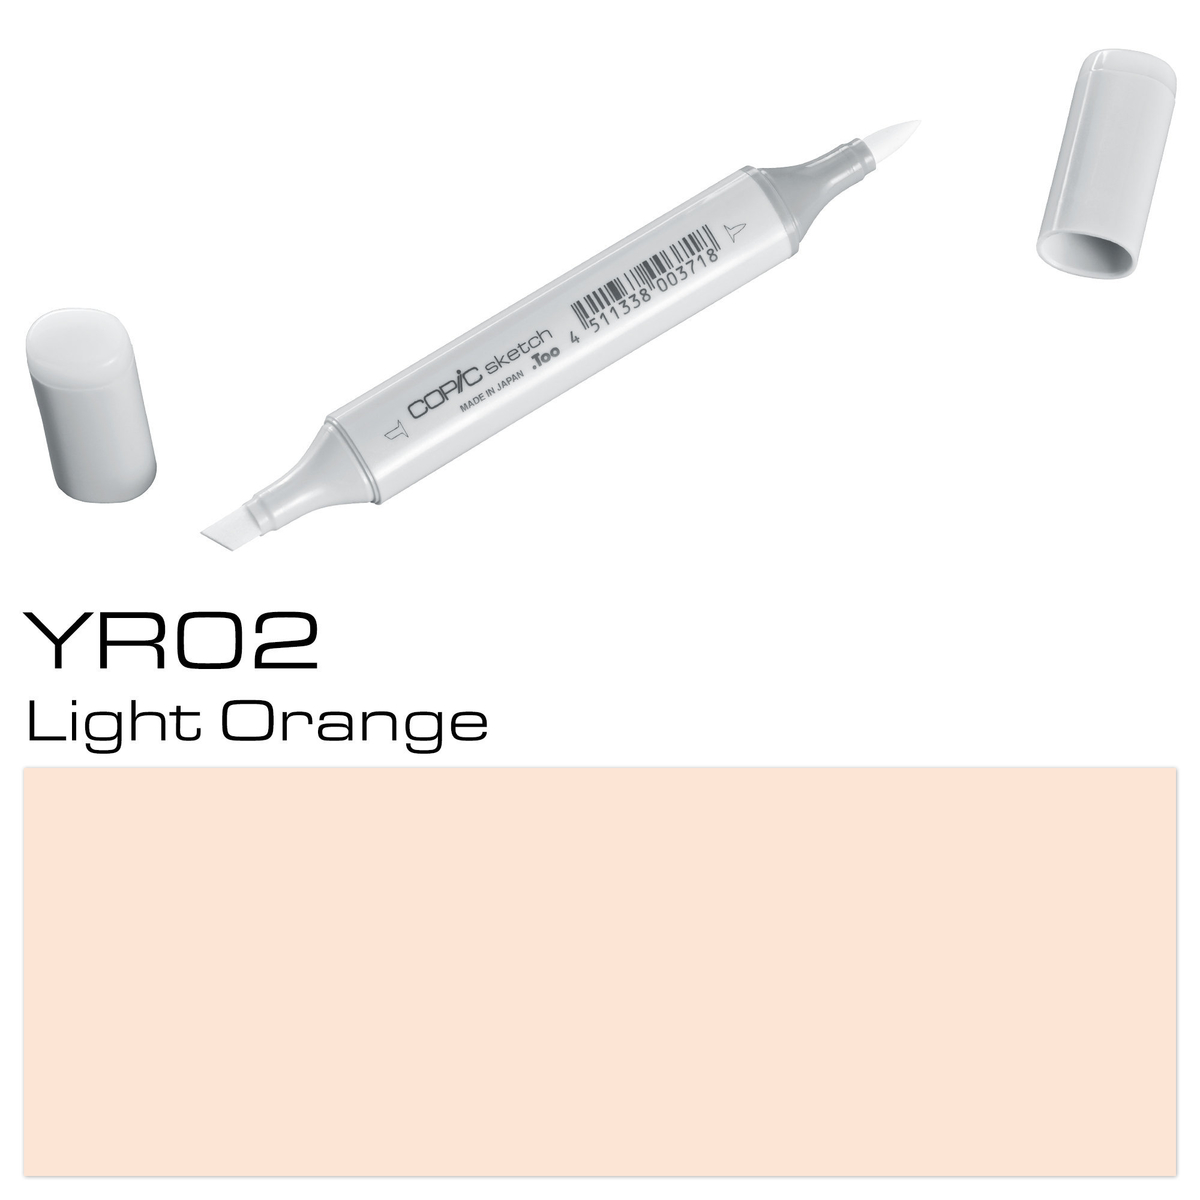 Copic Sketch YR 02 lgt orange